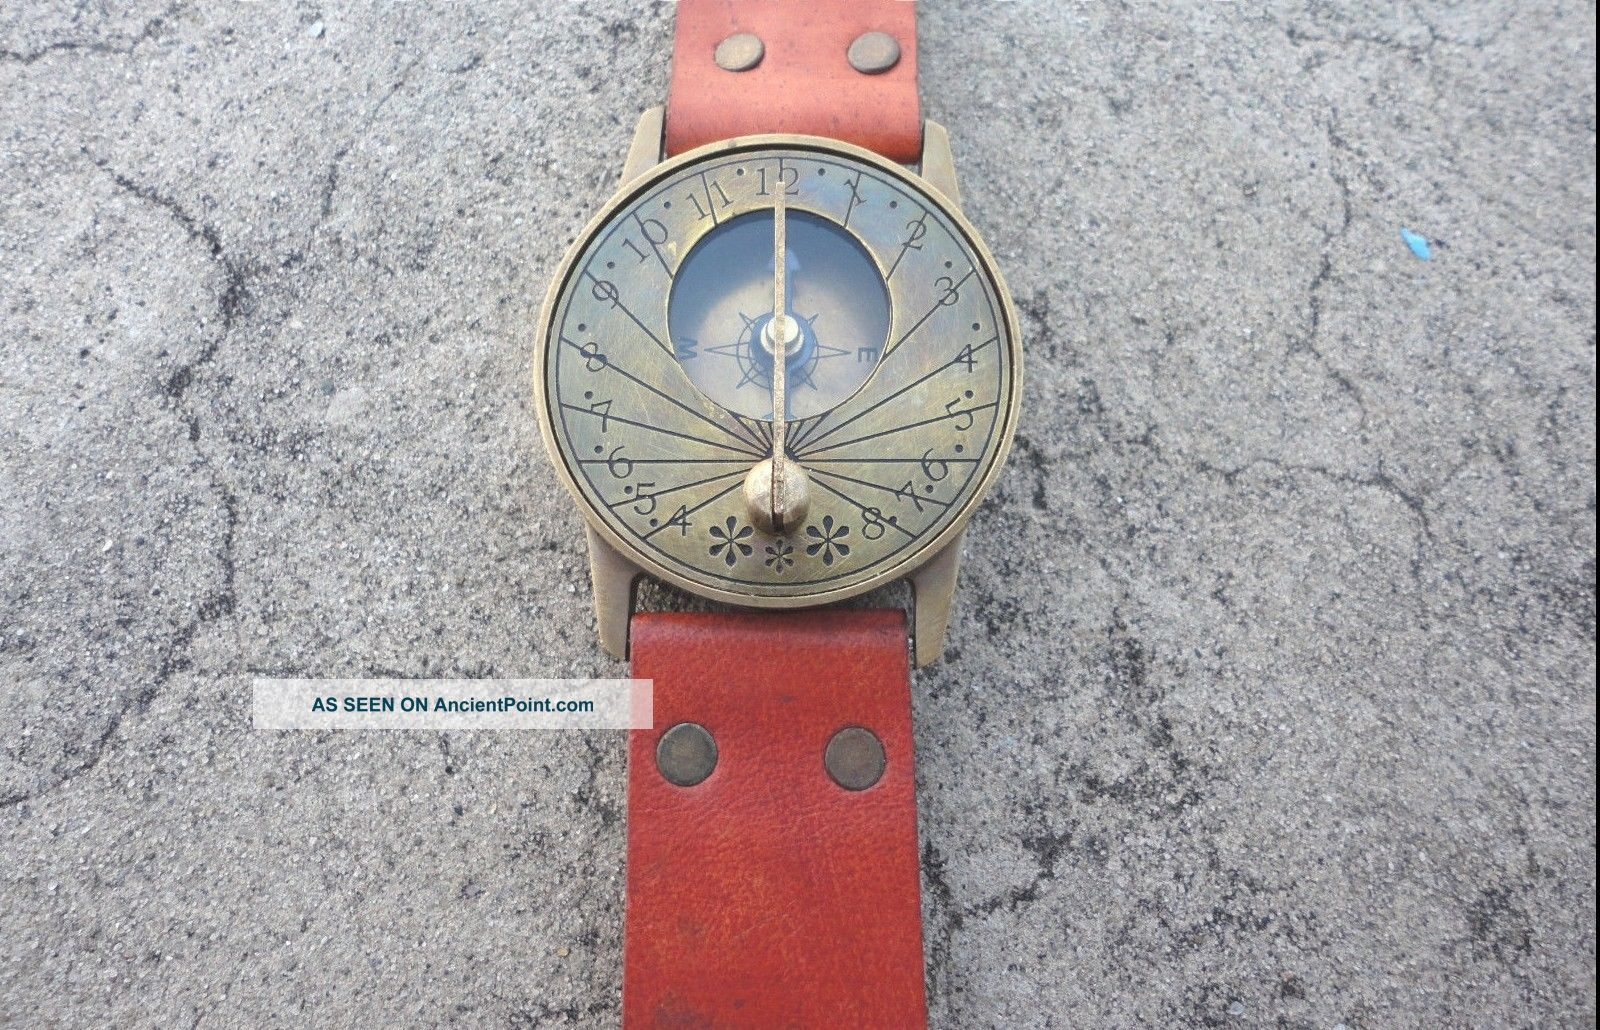 Vintage Style Marine Nautical Brass Sundial Compass Wrist Watch Type - See more Vintage Style Marine Nautical Brass Sundial Co... photo